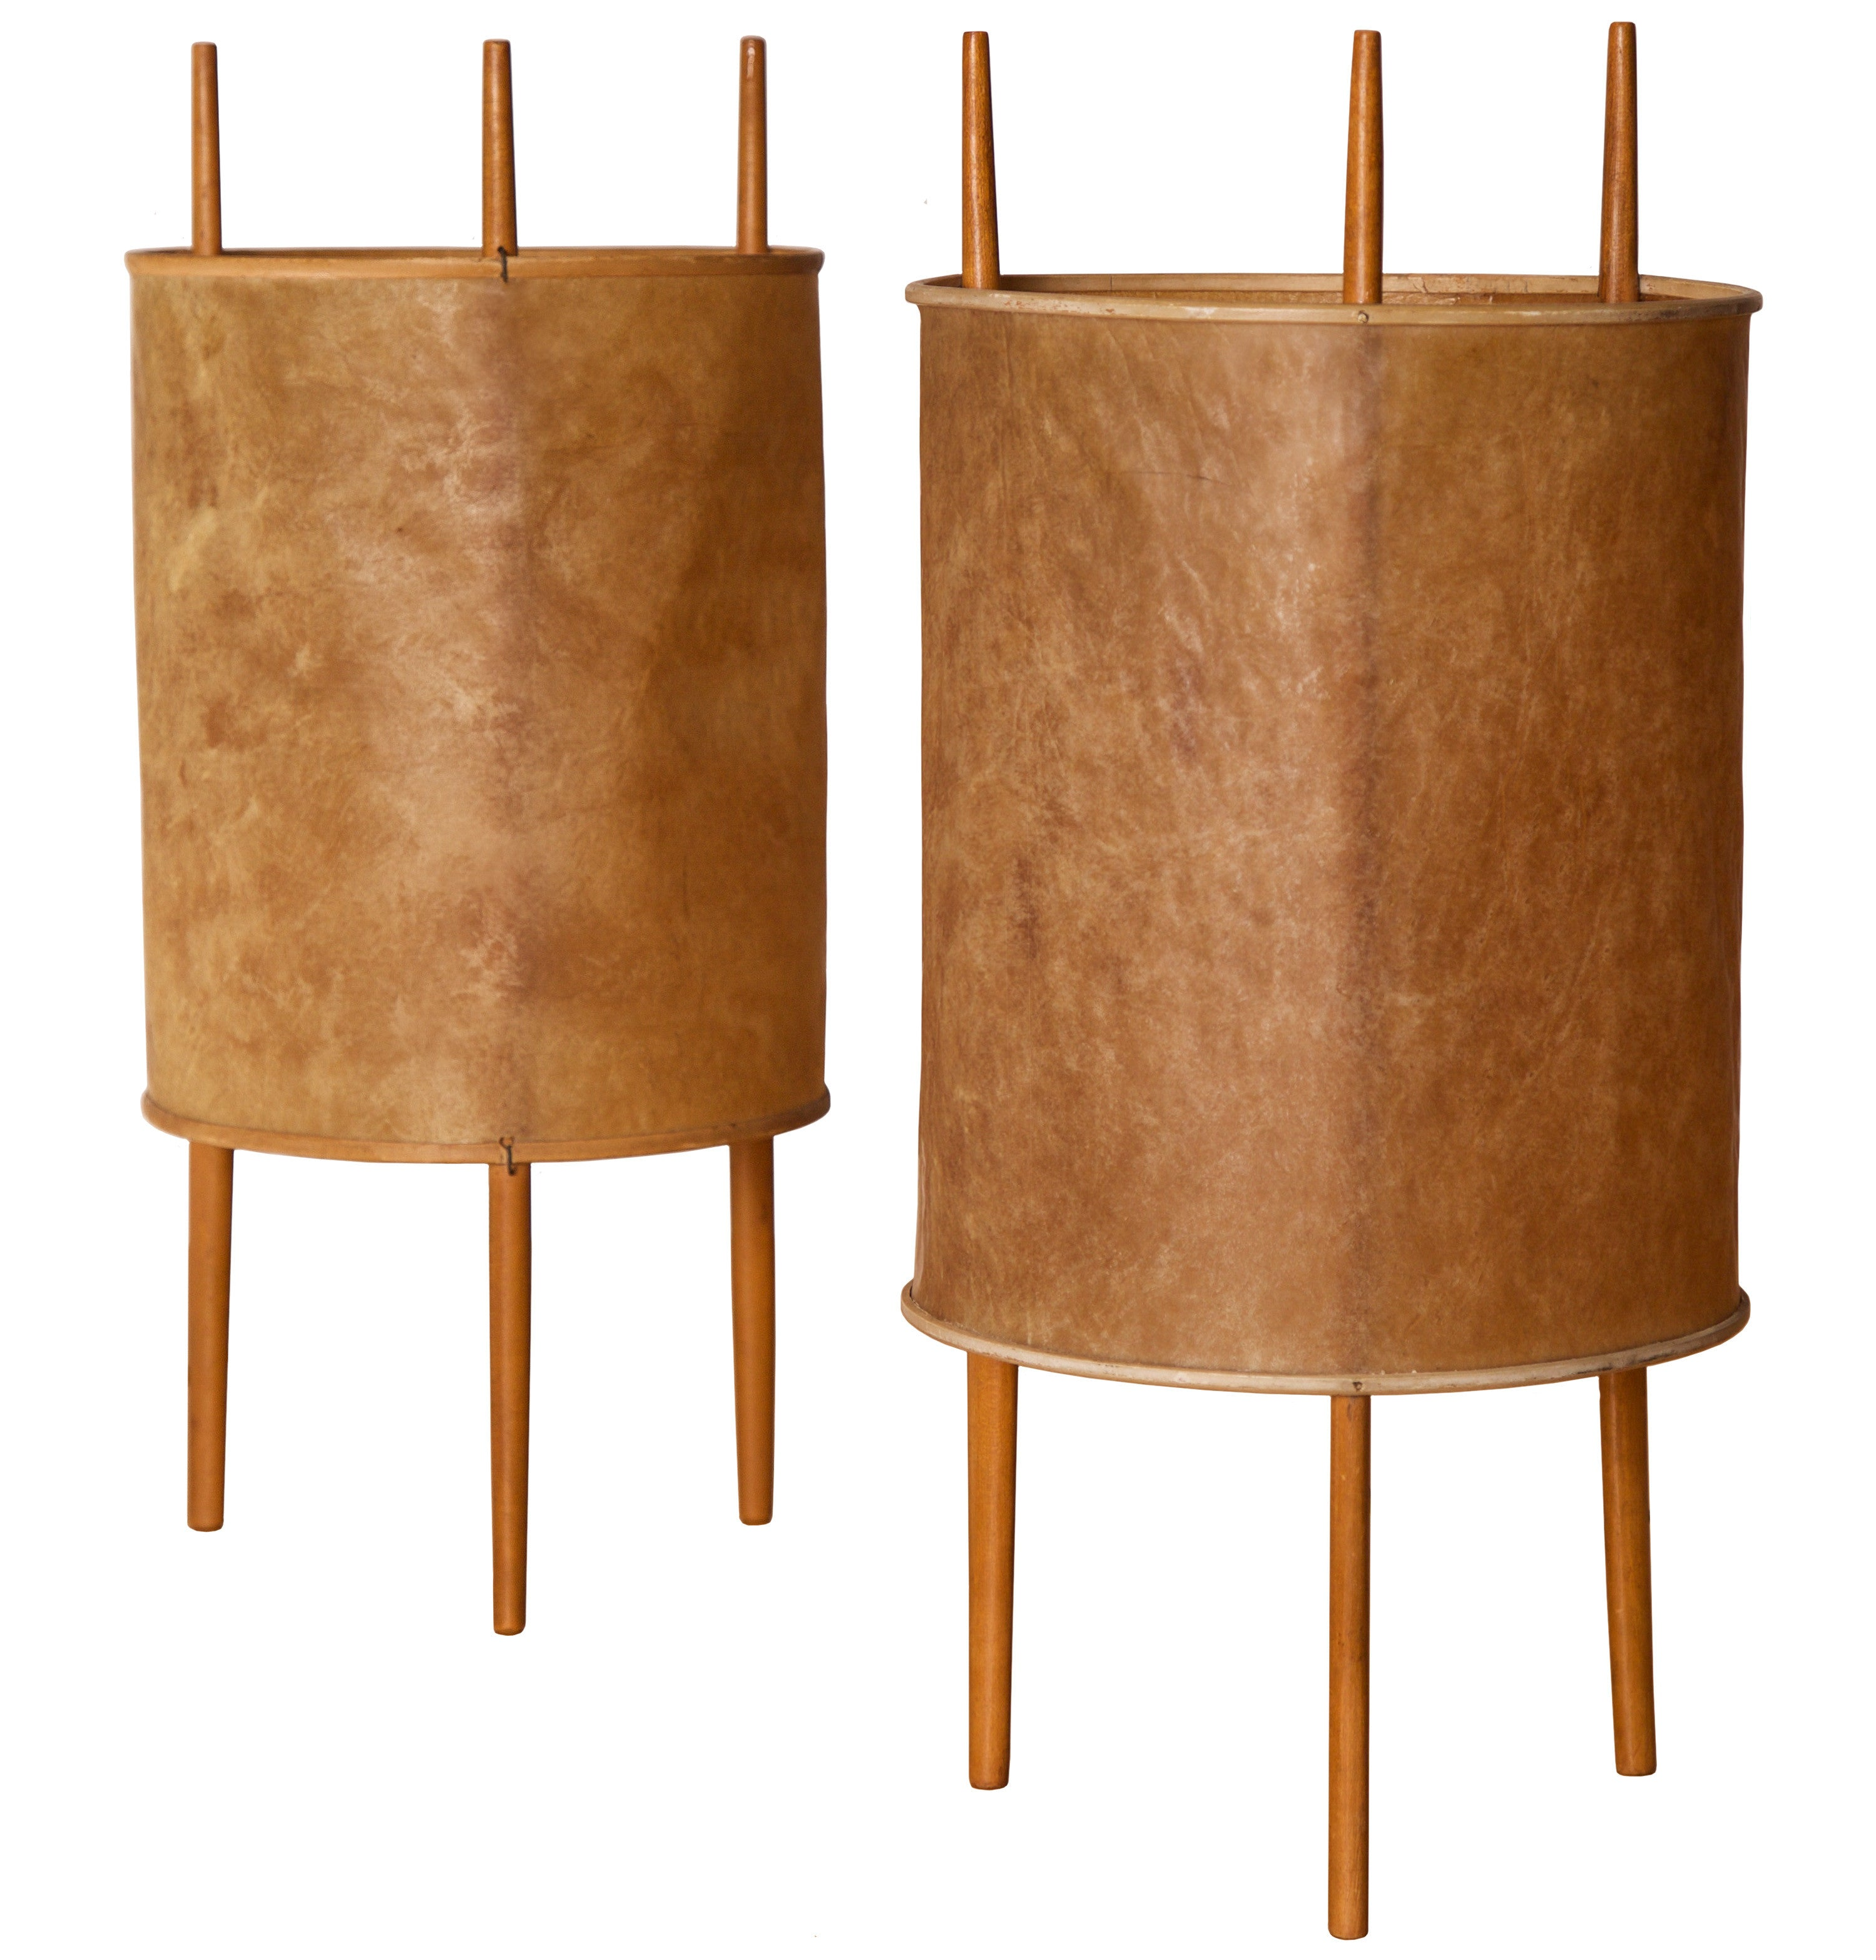 Isamu Noguchi, Early Pair of Table Lamps, All Original, by Knoll, 1947 - The Exchange Int